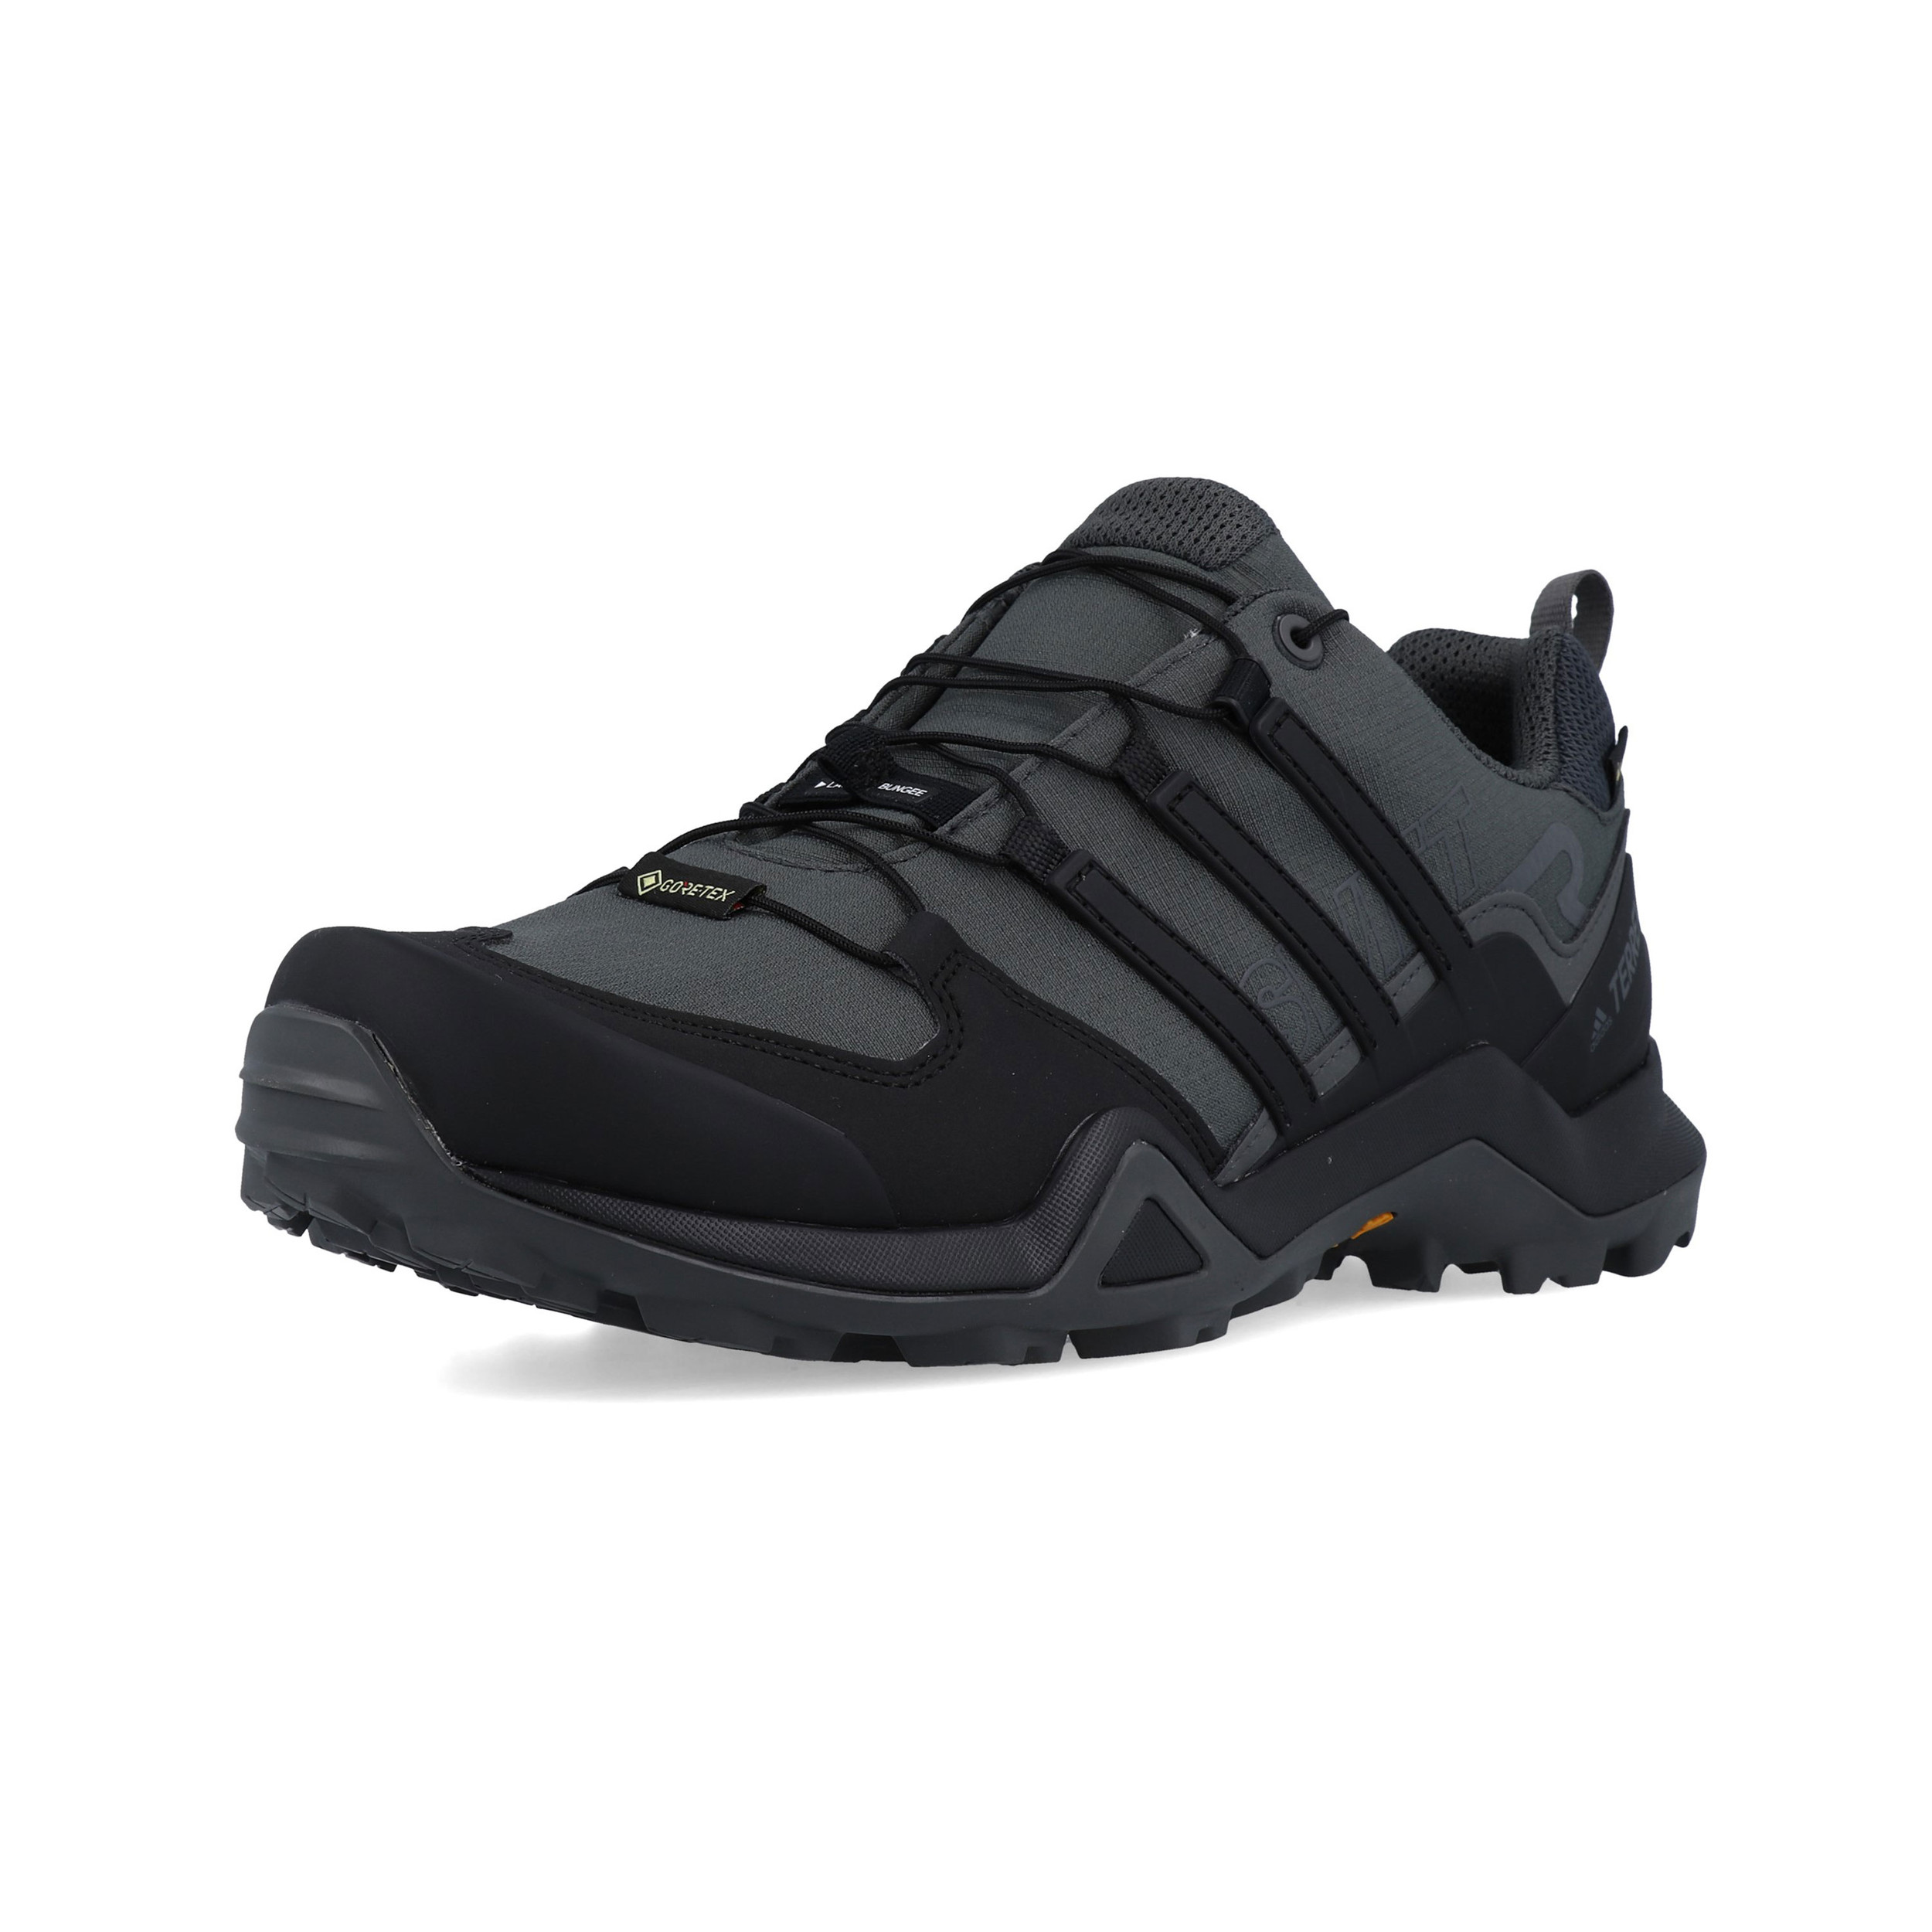 Details zu adidas Mens Terrex Swift R2 GORE TEX Walking Shoes Black Sports Outdoors